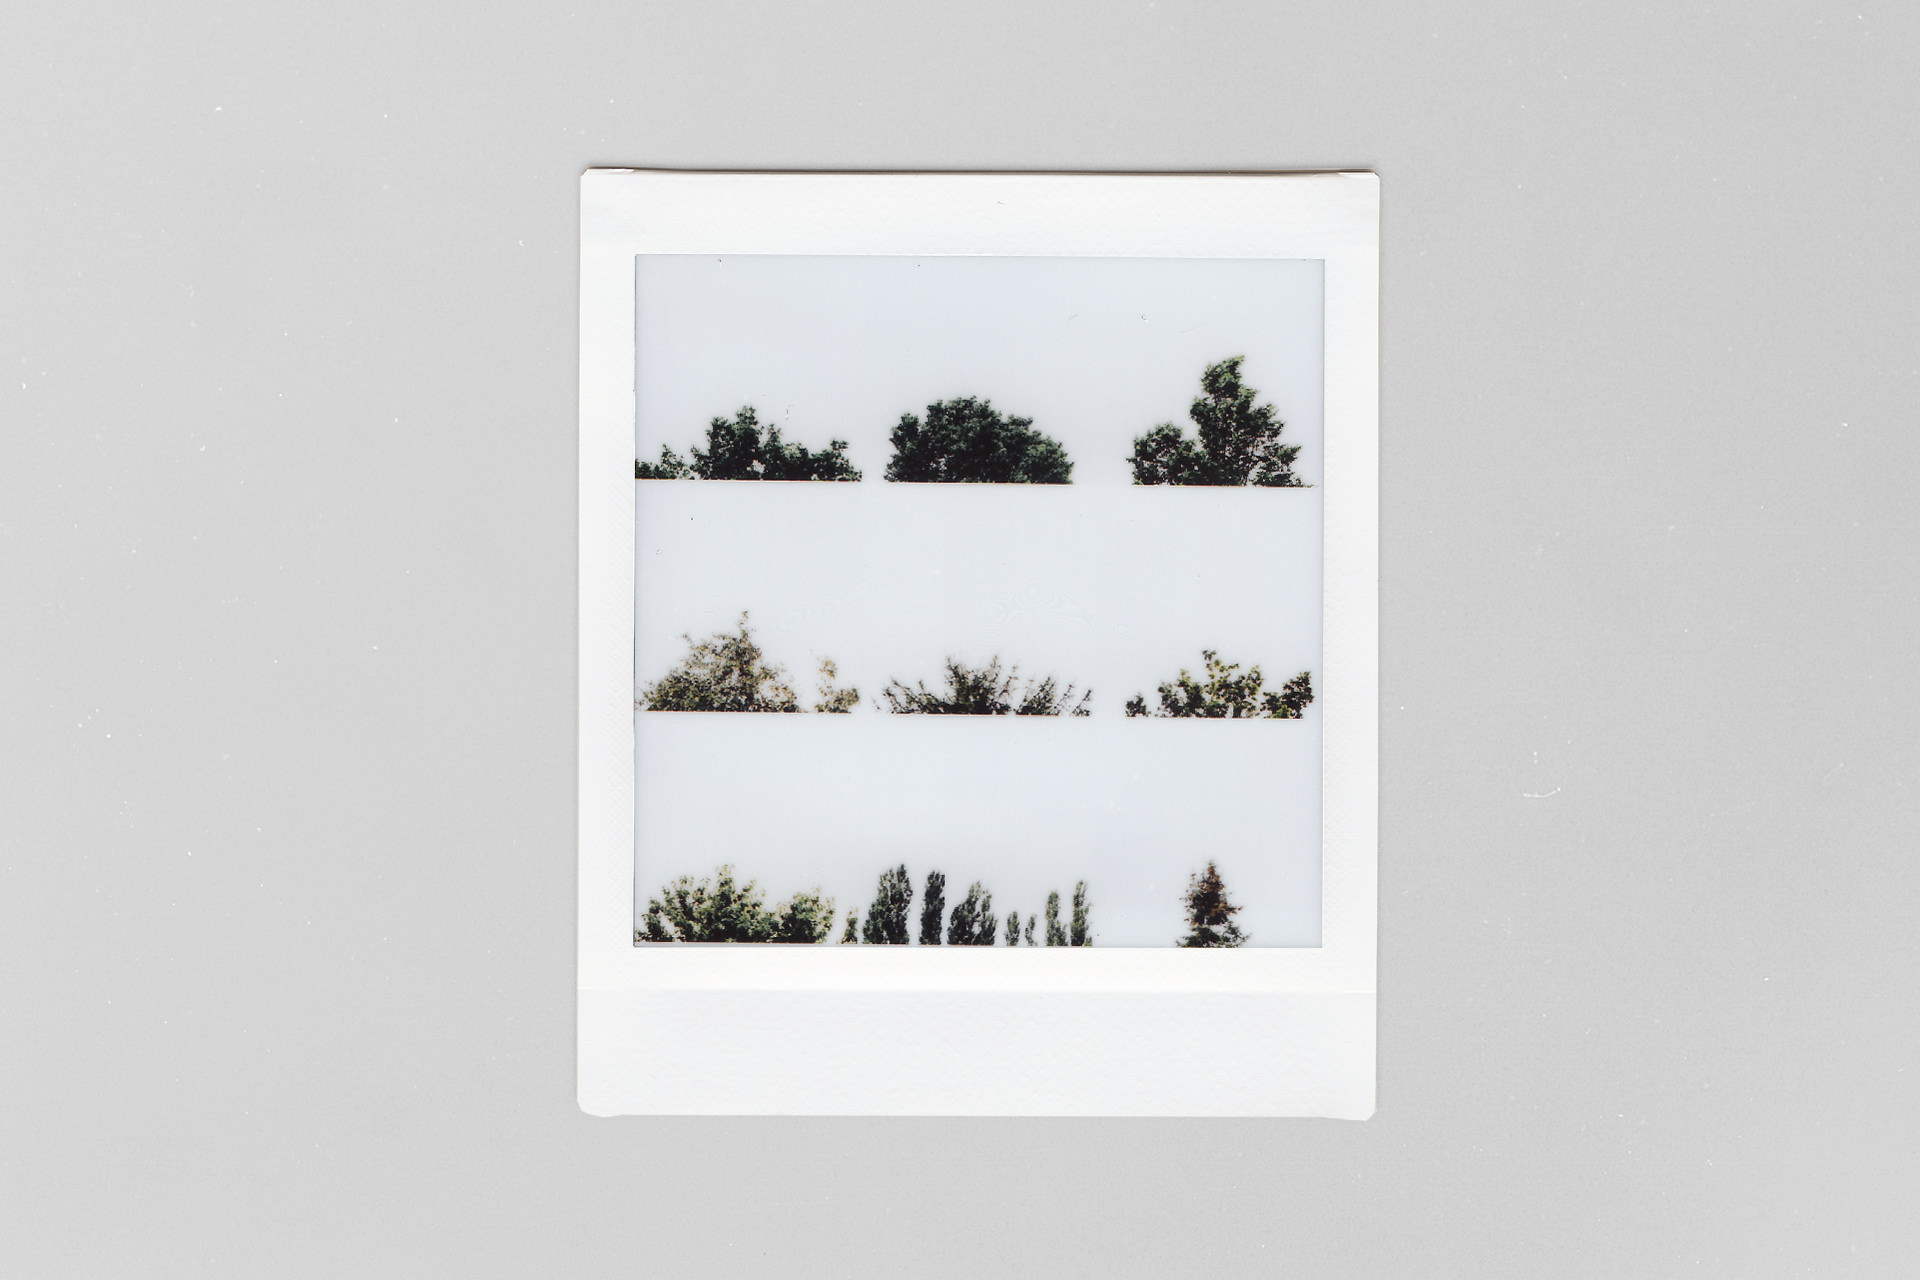 Fuji-Instax-SQ10-Collage-Minimal